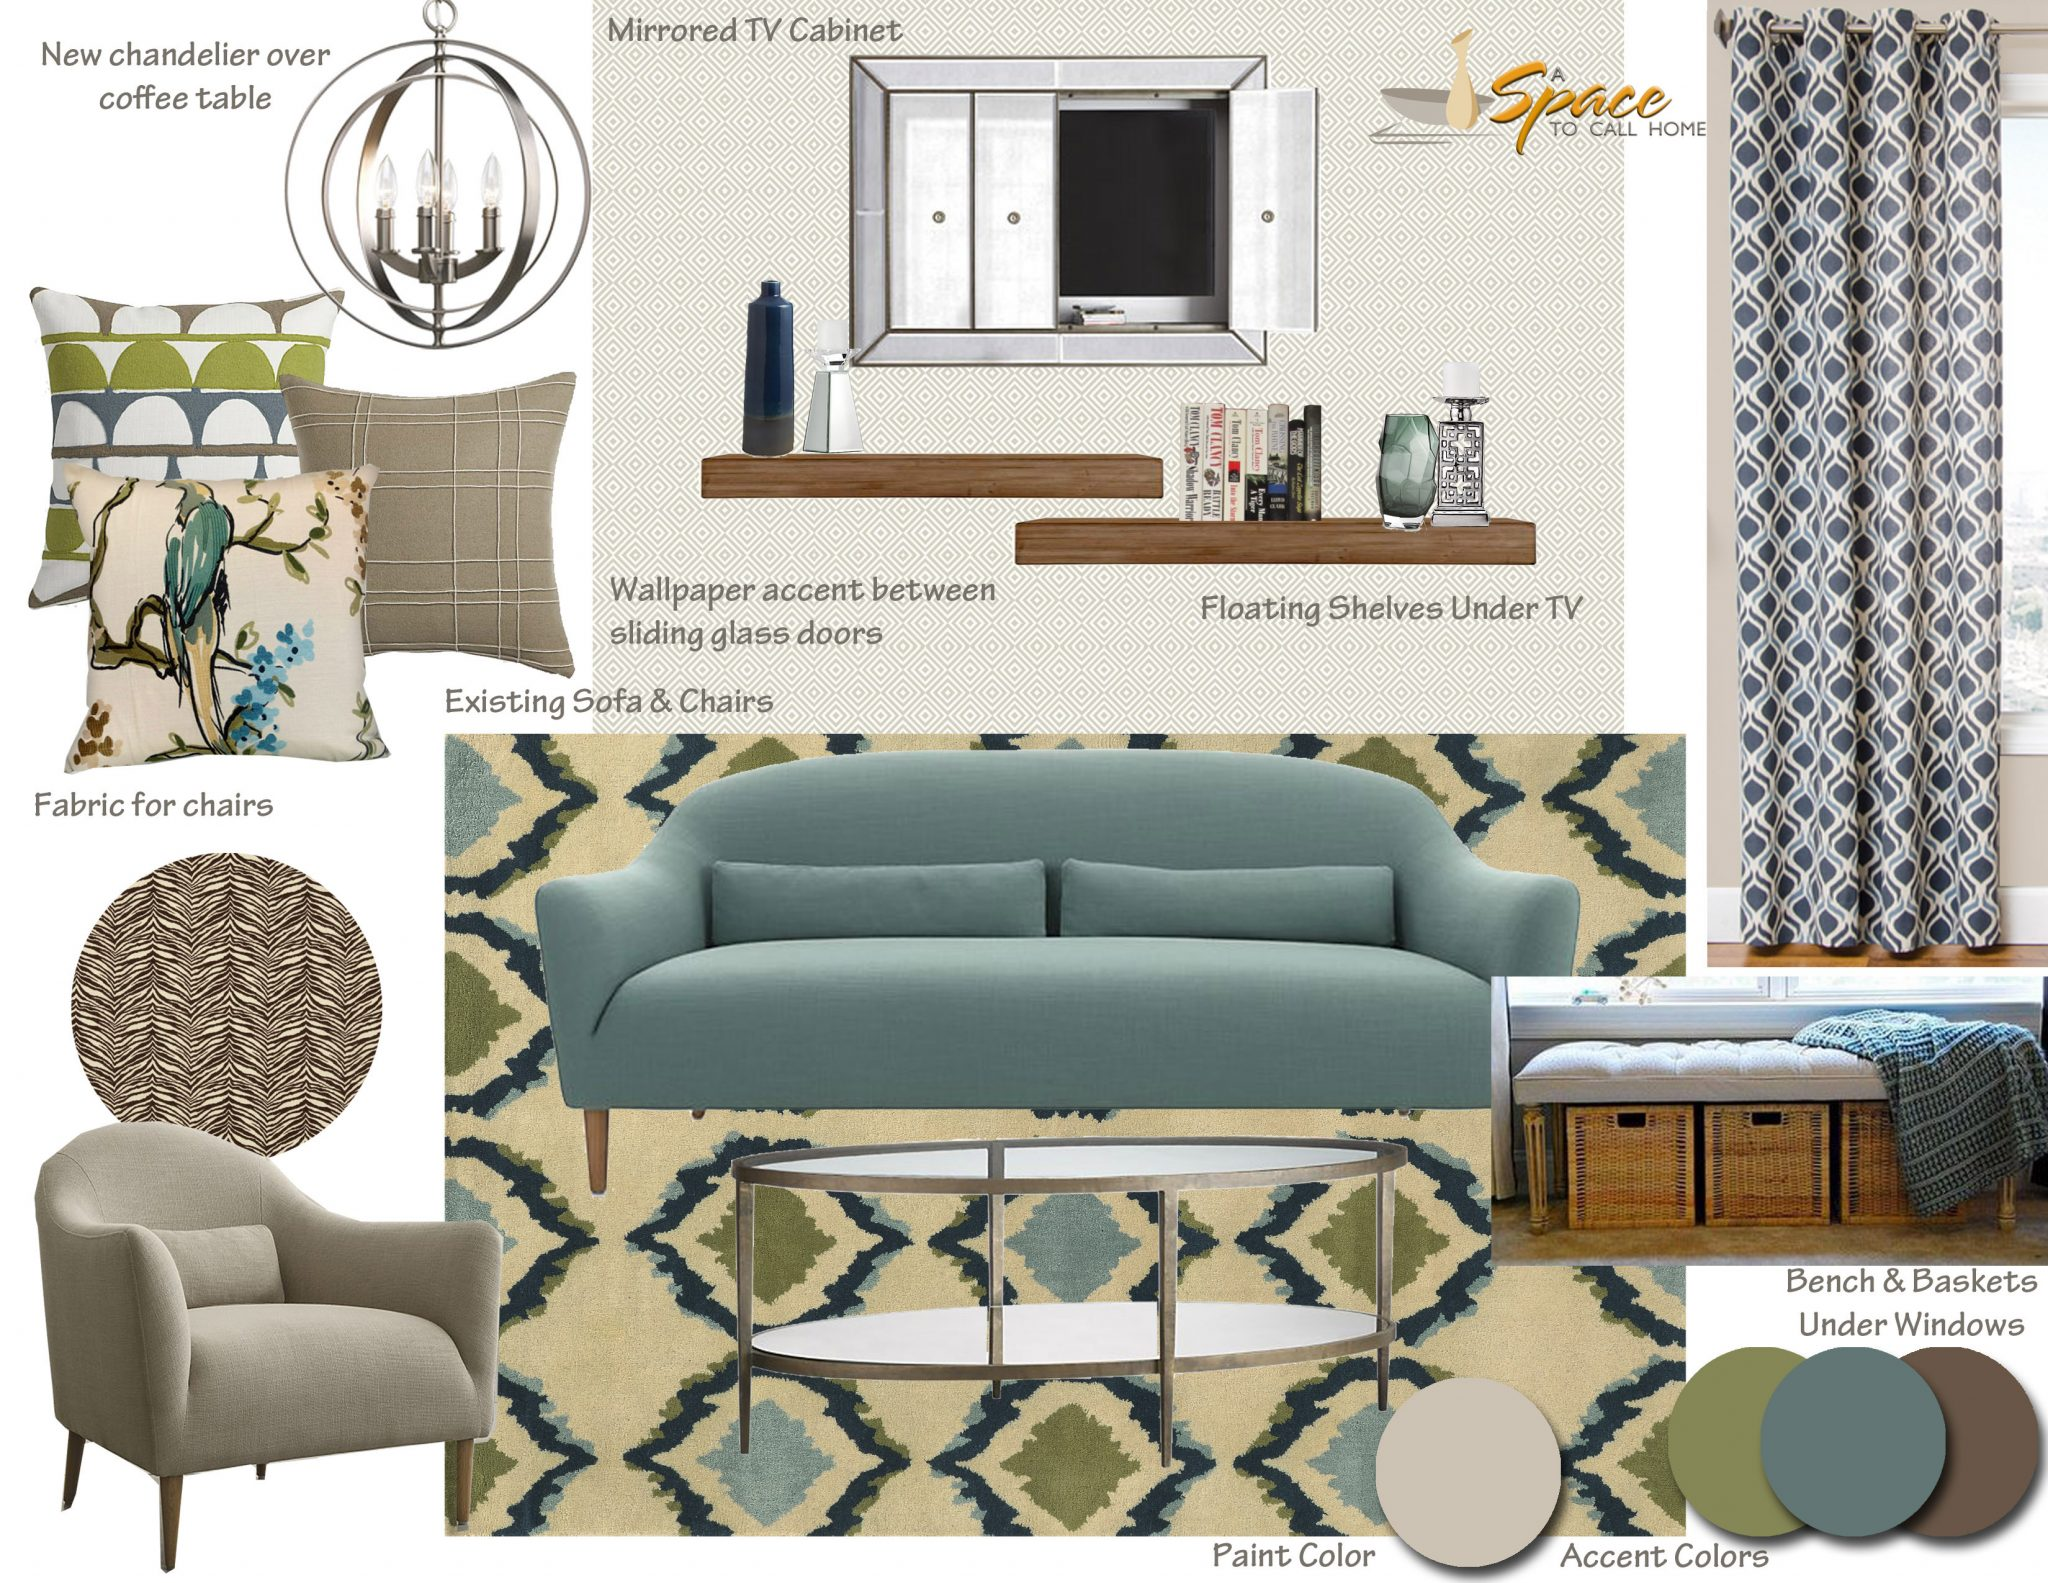 Mid century modern living room inspiration board a space for Modern contemporary decor